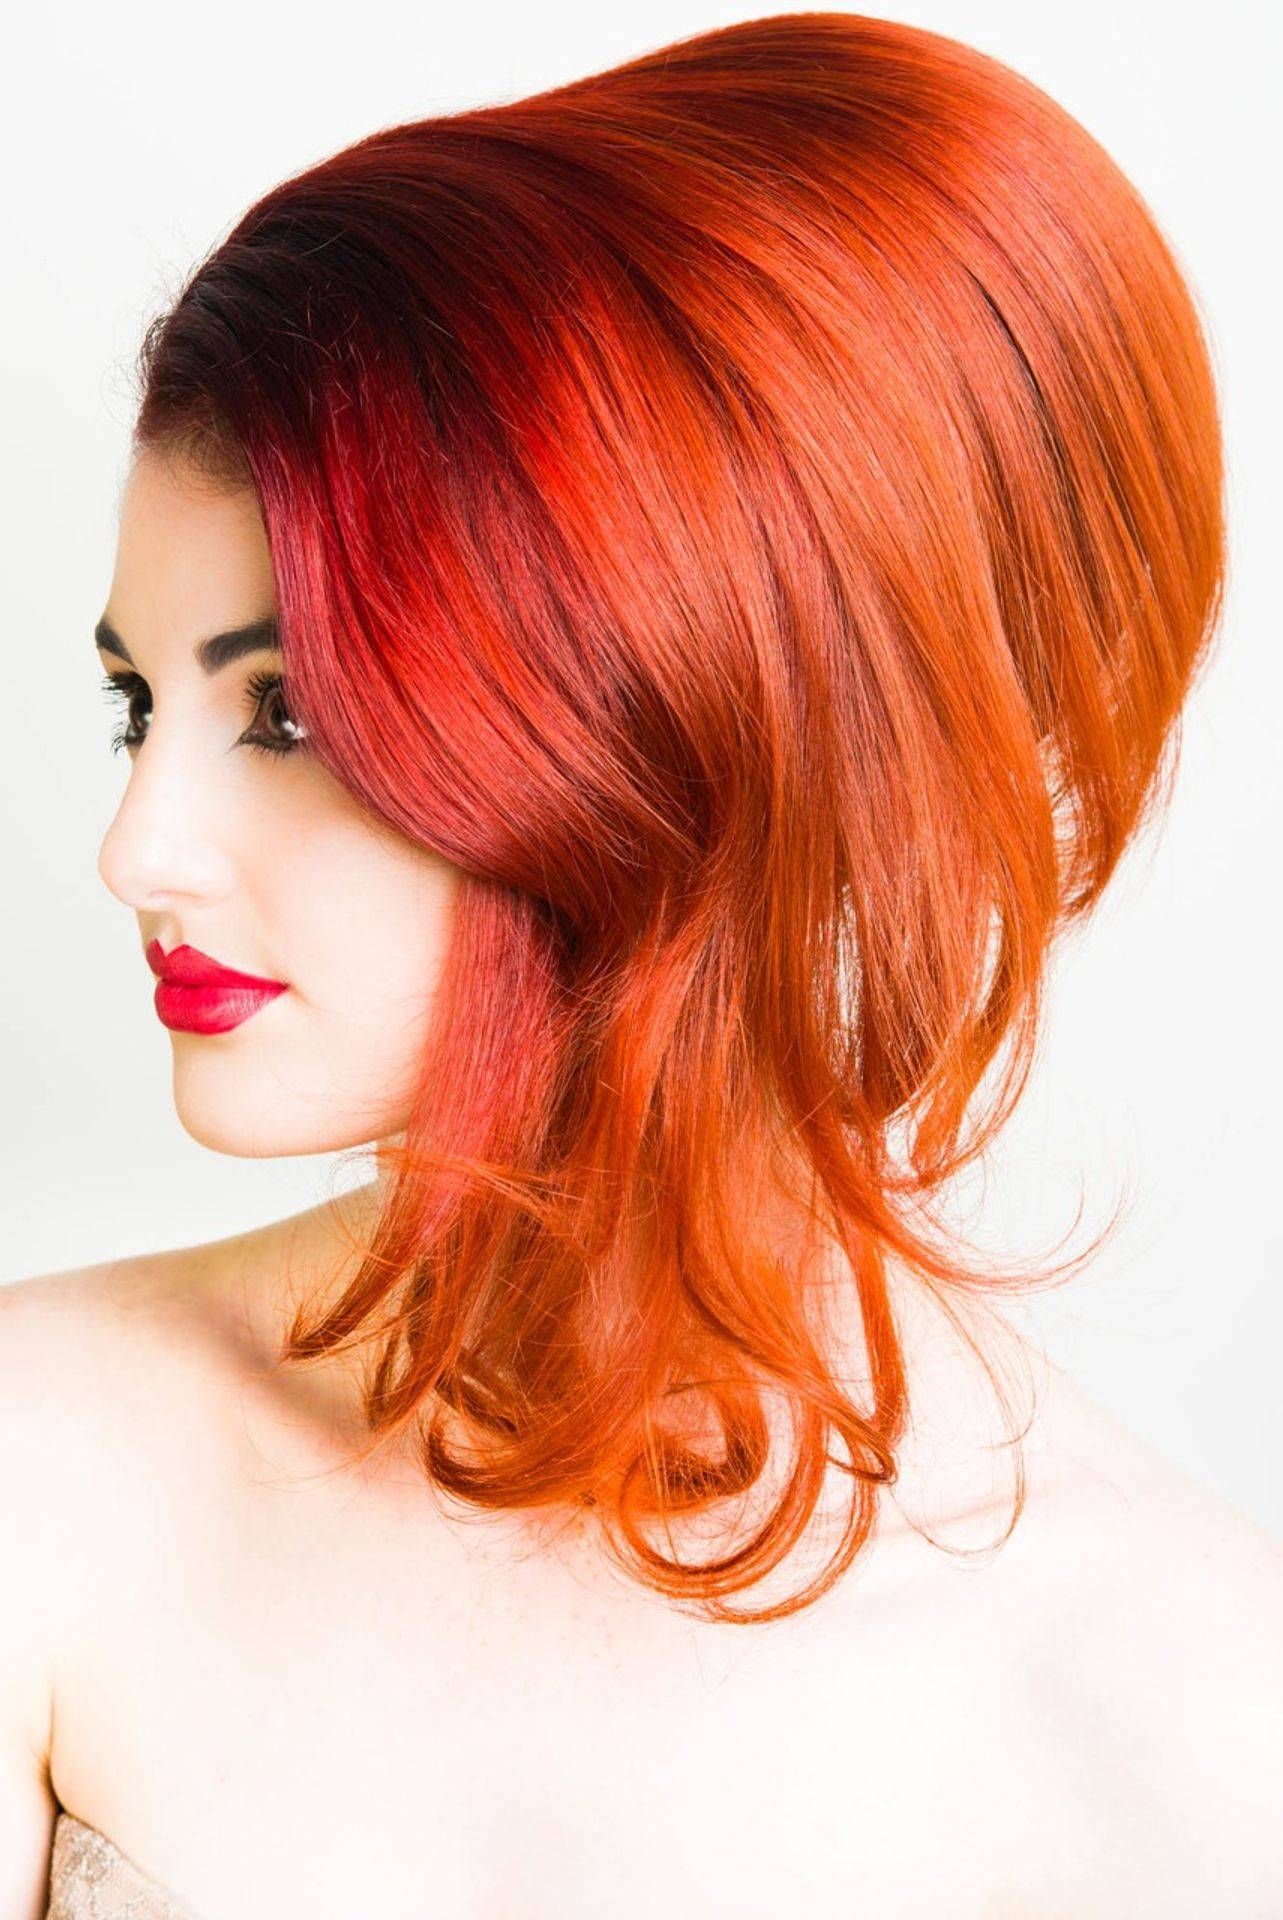 Local models used in all our marketing and images Candy hair up.